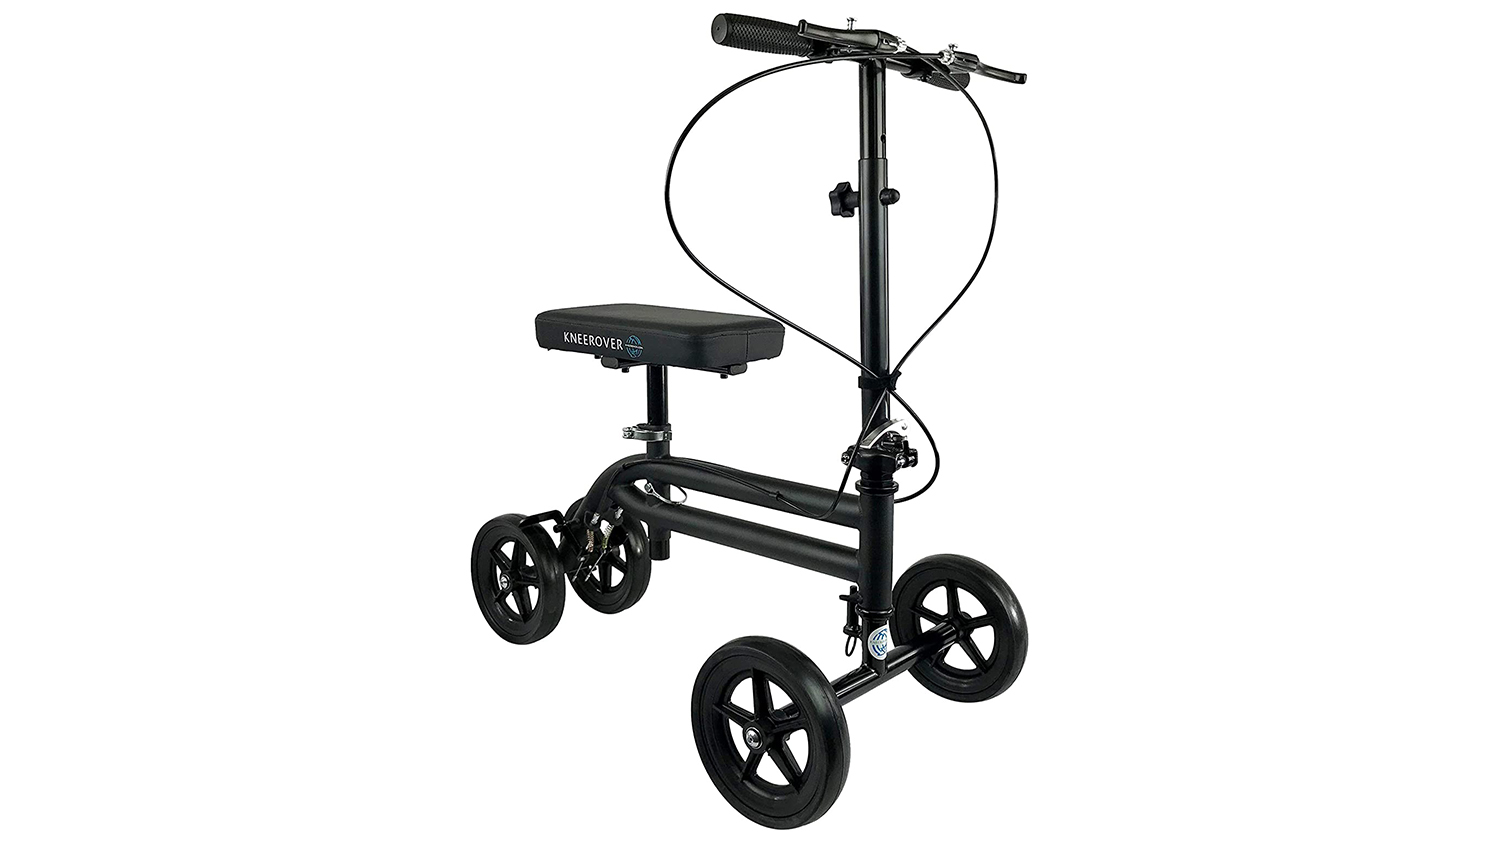 kneerover mobility scooter